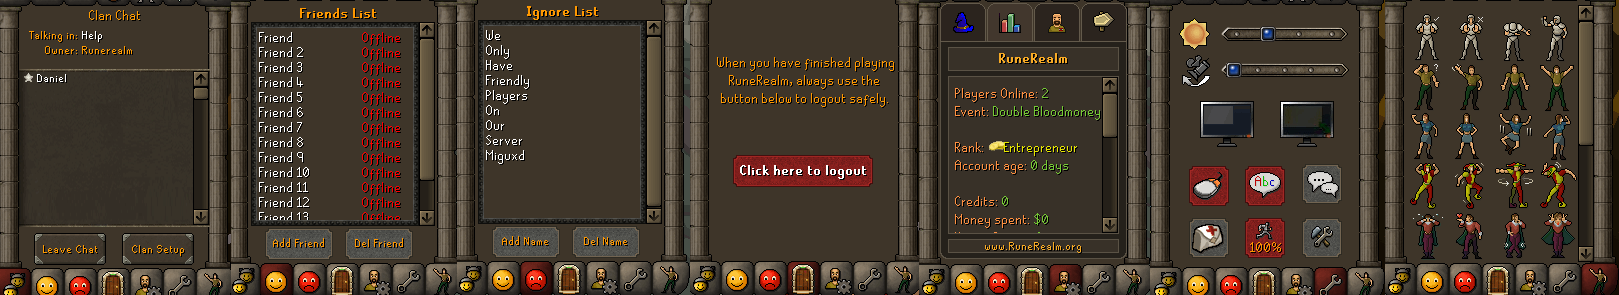 runerealm-interfaces-bottom.png